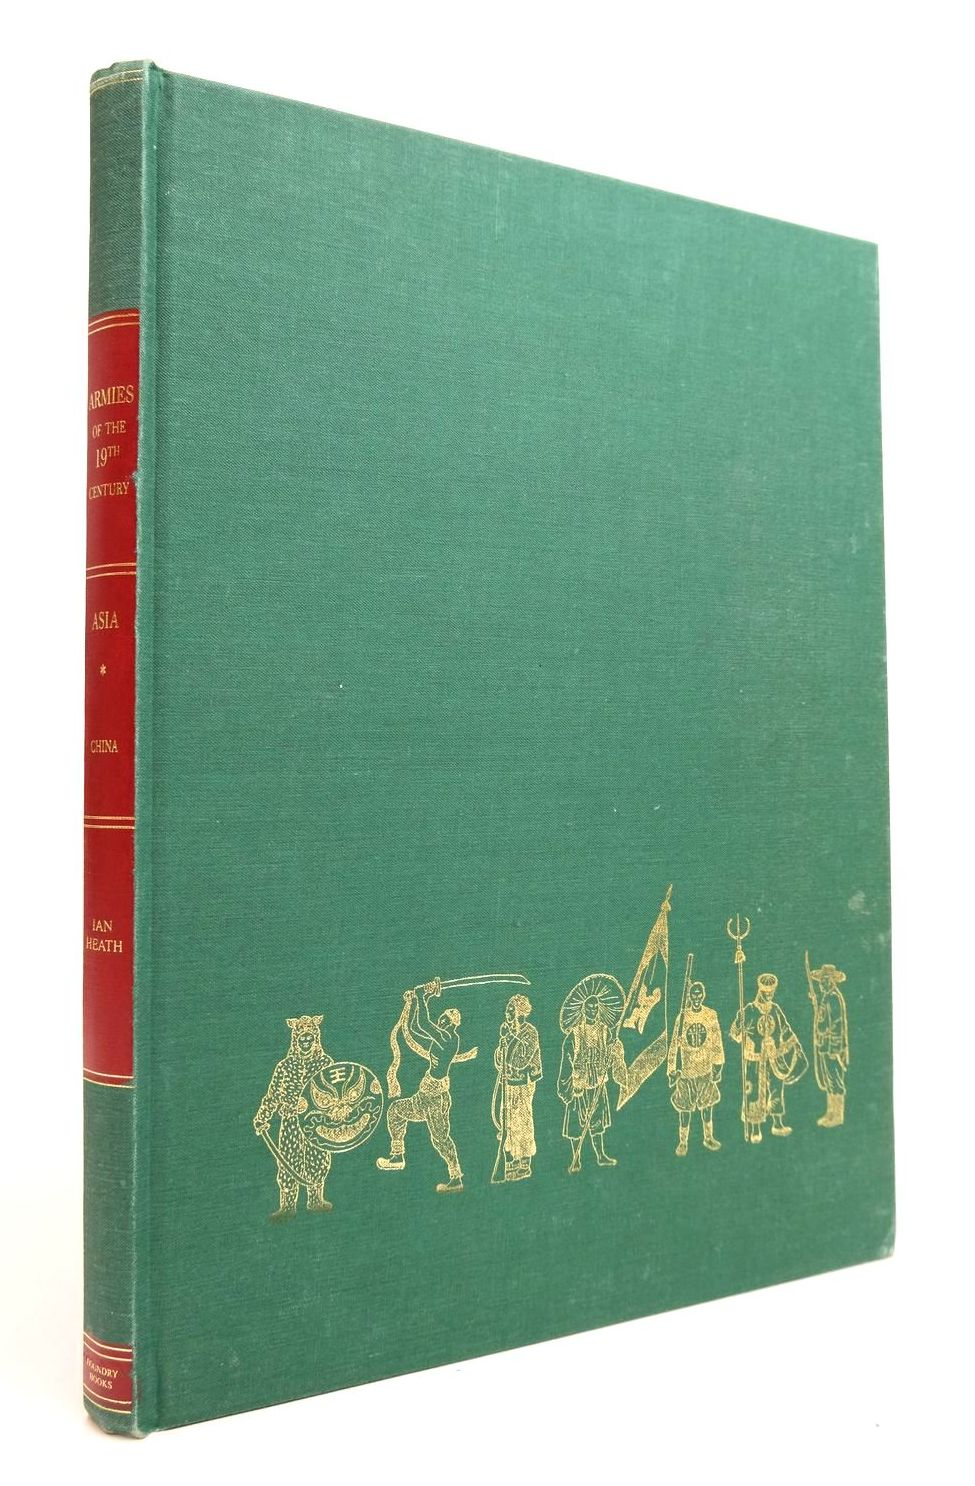 Photo of ARMIES OF THE NINETEENTH CENTURY: ASIA VOLUME 2 written by Heath, Ian published by Foundry Books (STOCK CODE: 2132455)  for sale by Stella & Rose's Books